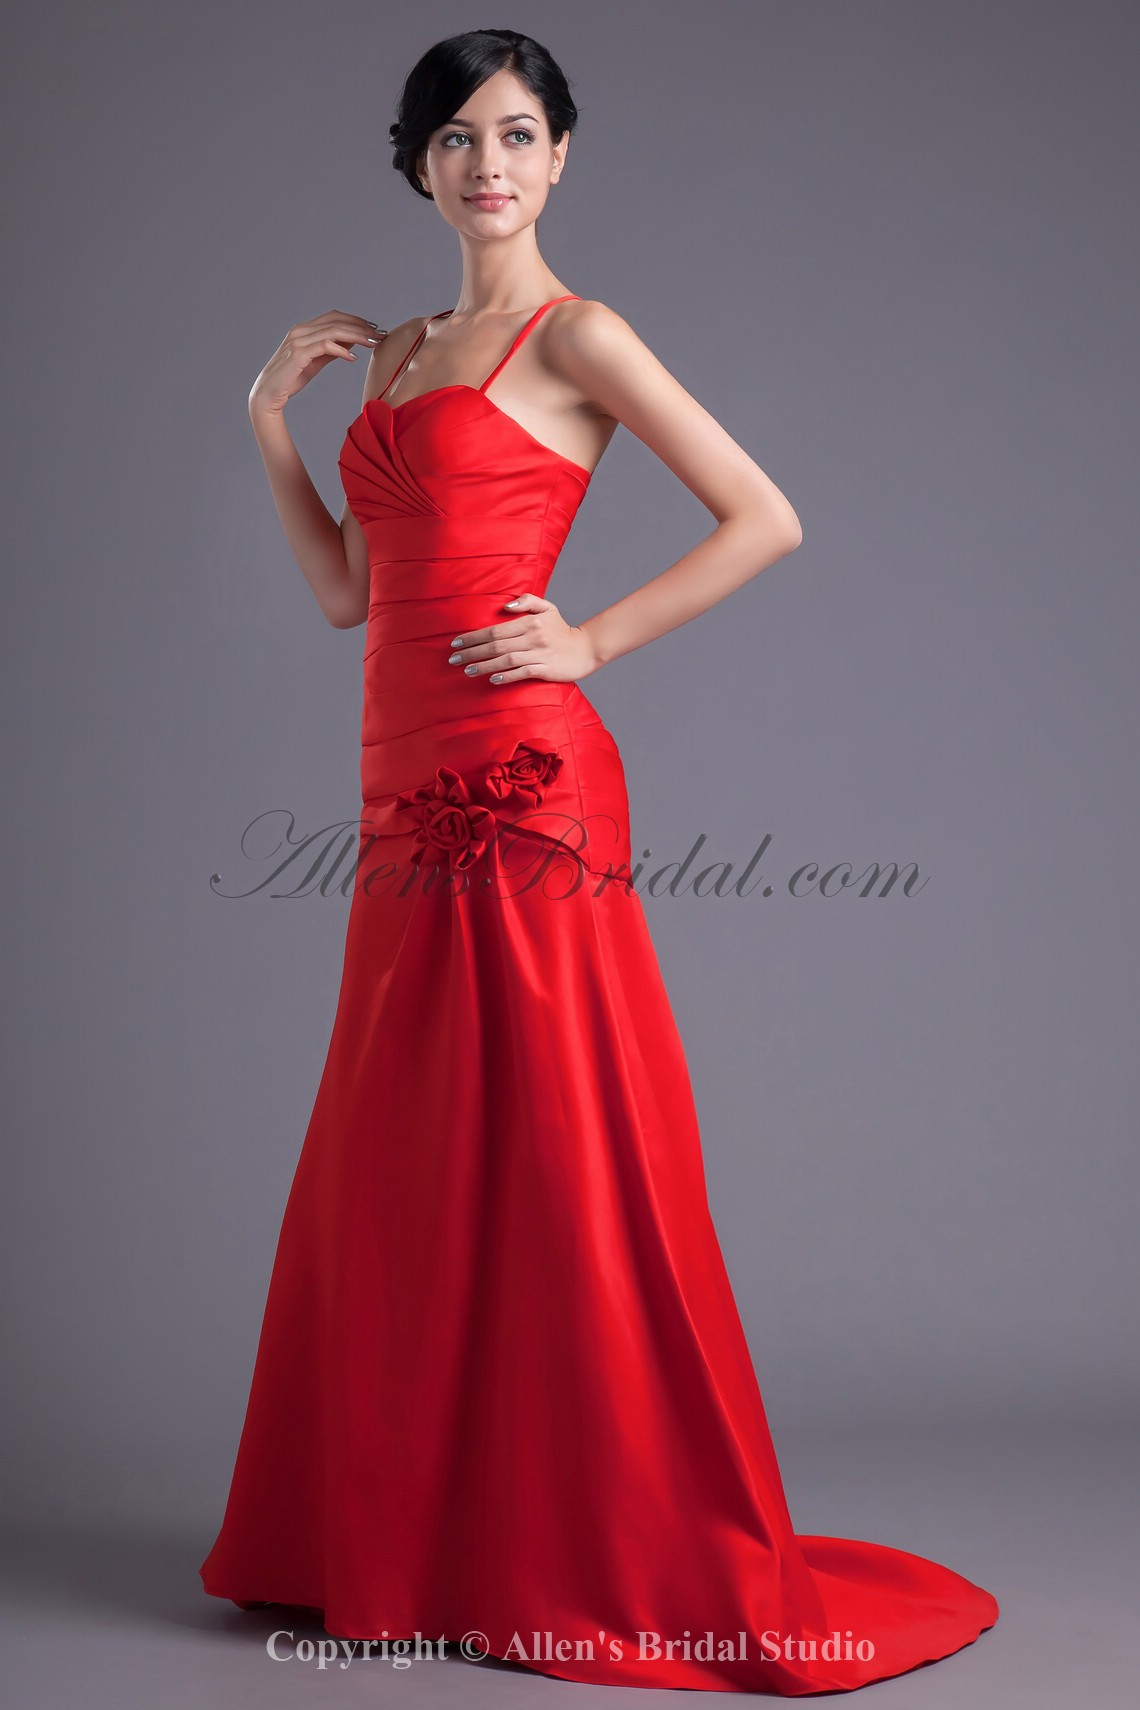 /34-267/satin-spaghetti-neckline-a-line-sweep-train-flowers-and-directionally-ruched-prom-dress.jpg